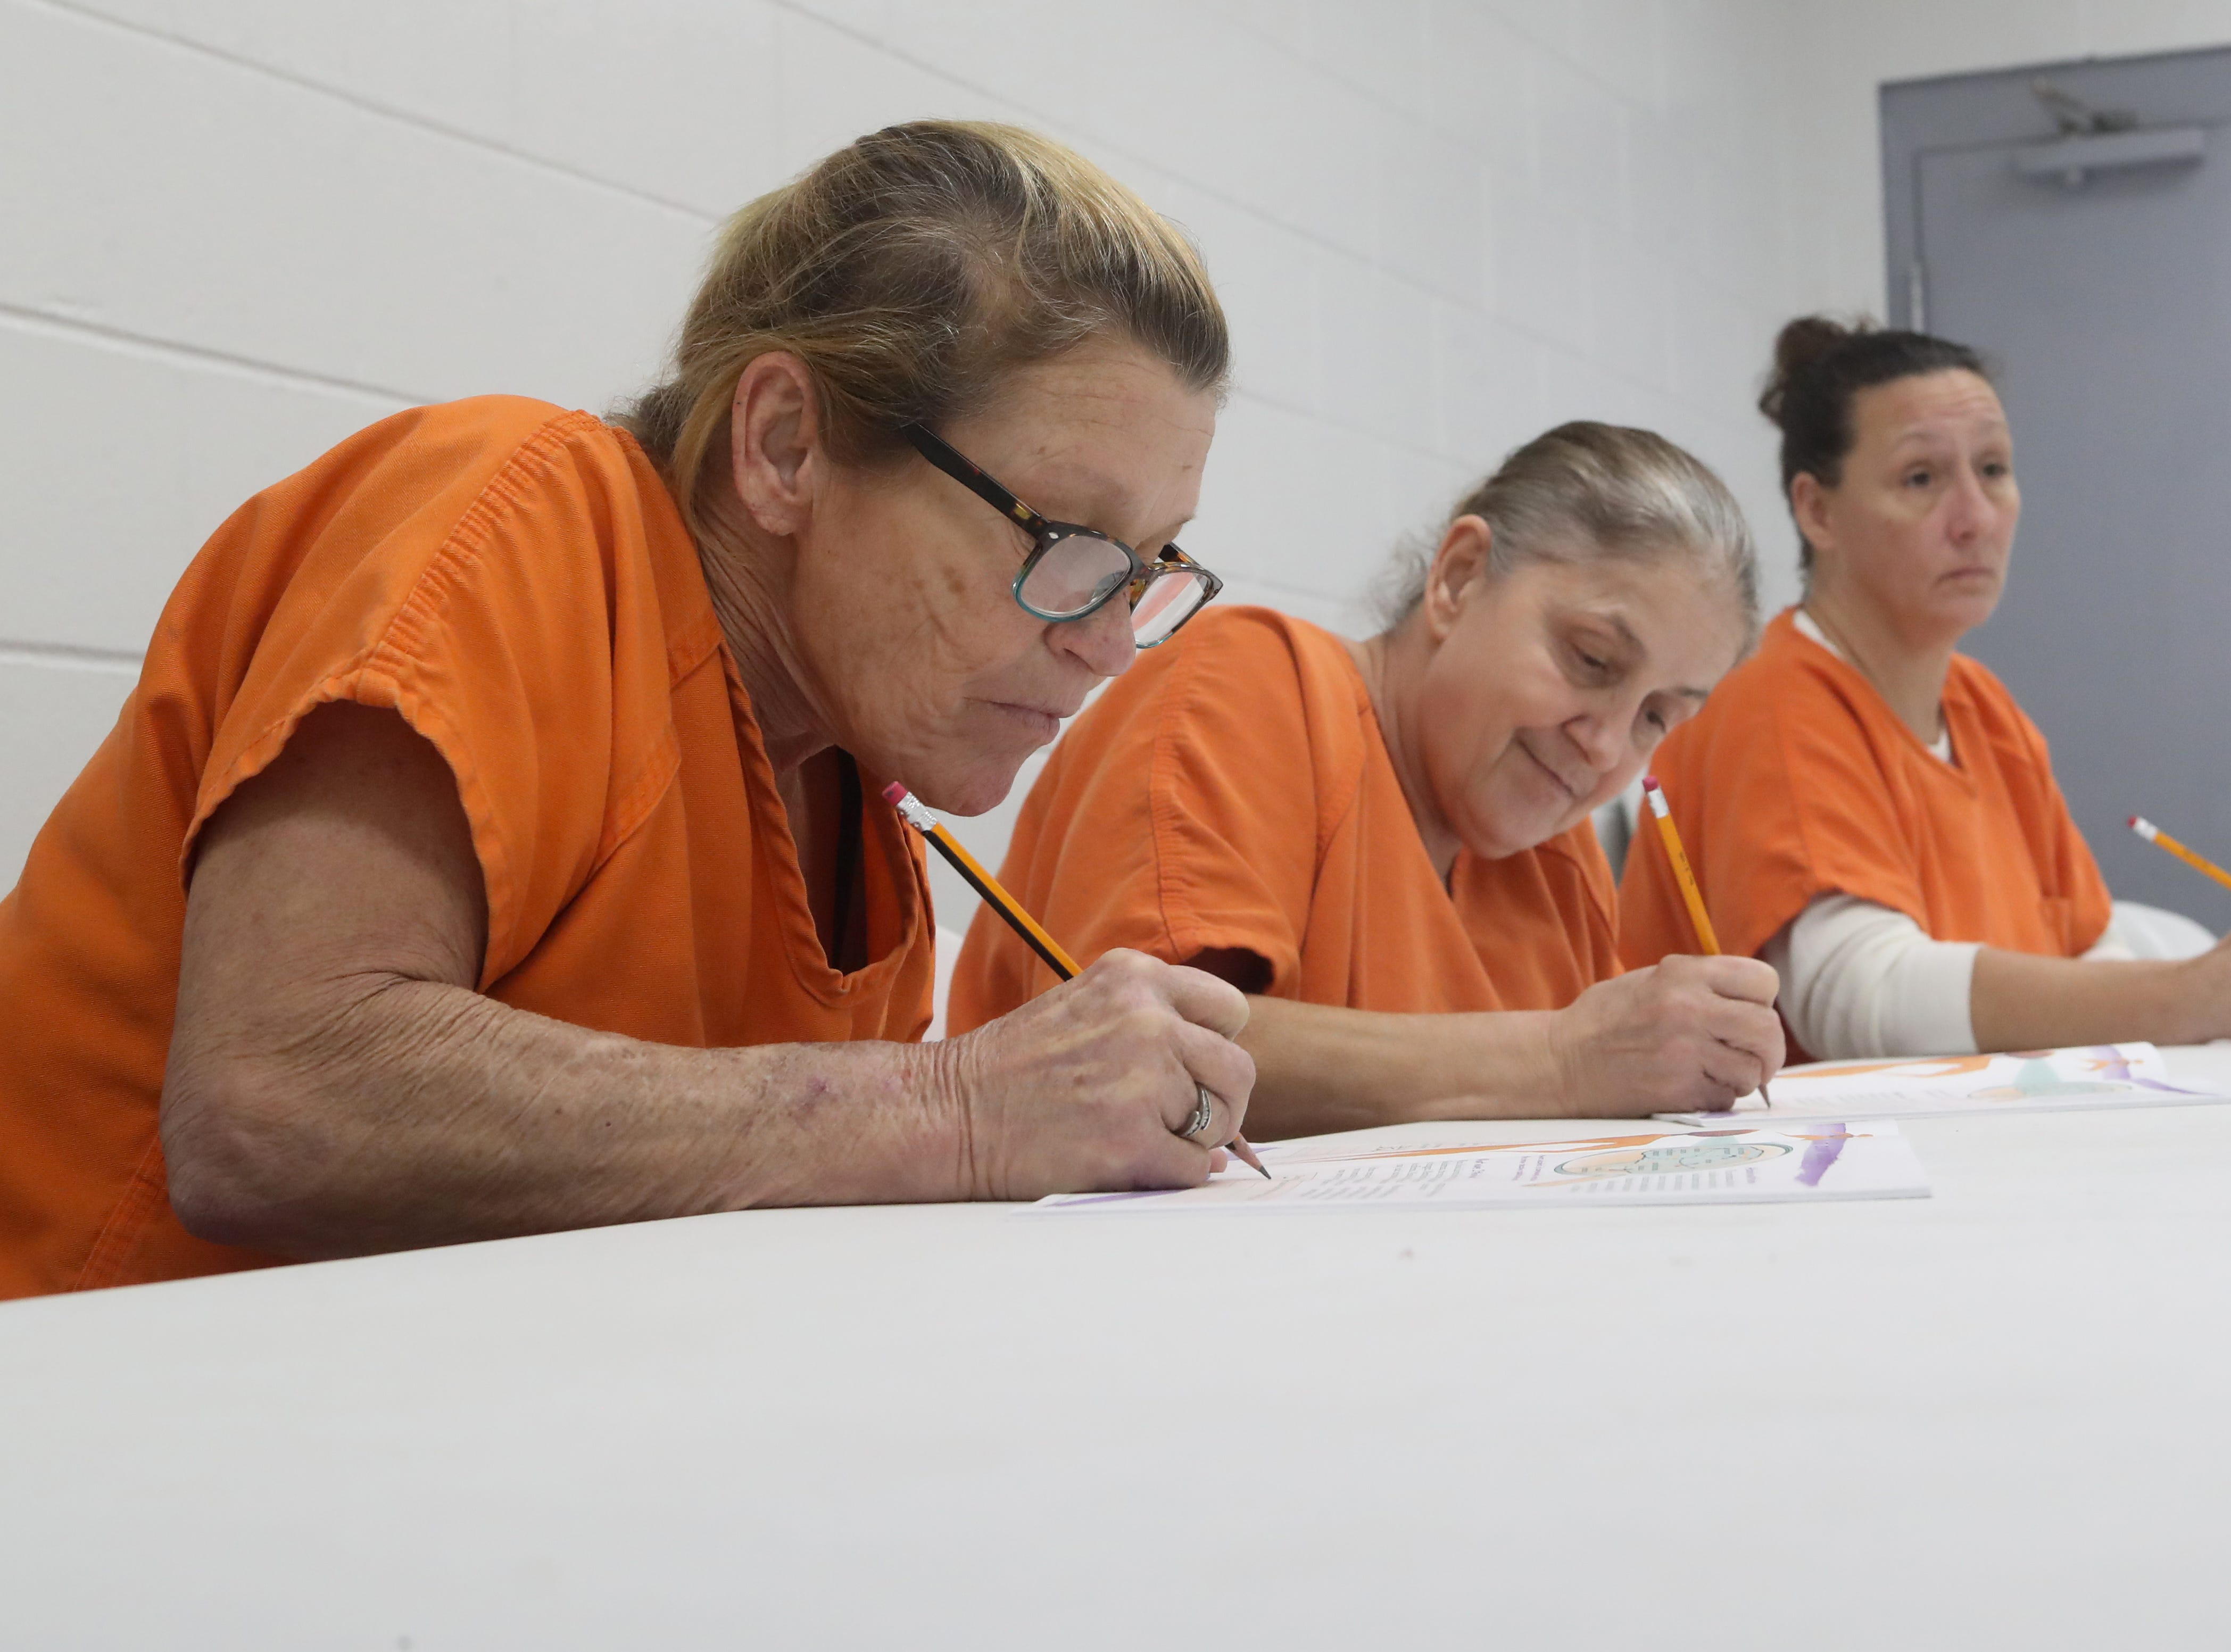 Donna Needer, Tina Davis and Tonya Seamon, inmates at the Franklin County Jail write in their workbooks during a substance abuse counseling class by DISC Village at the jail in Eastpoint, Fla. Thursday, Oct. 27, 2018.